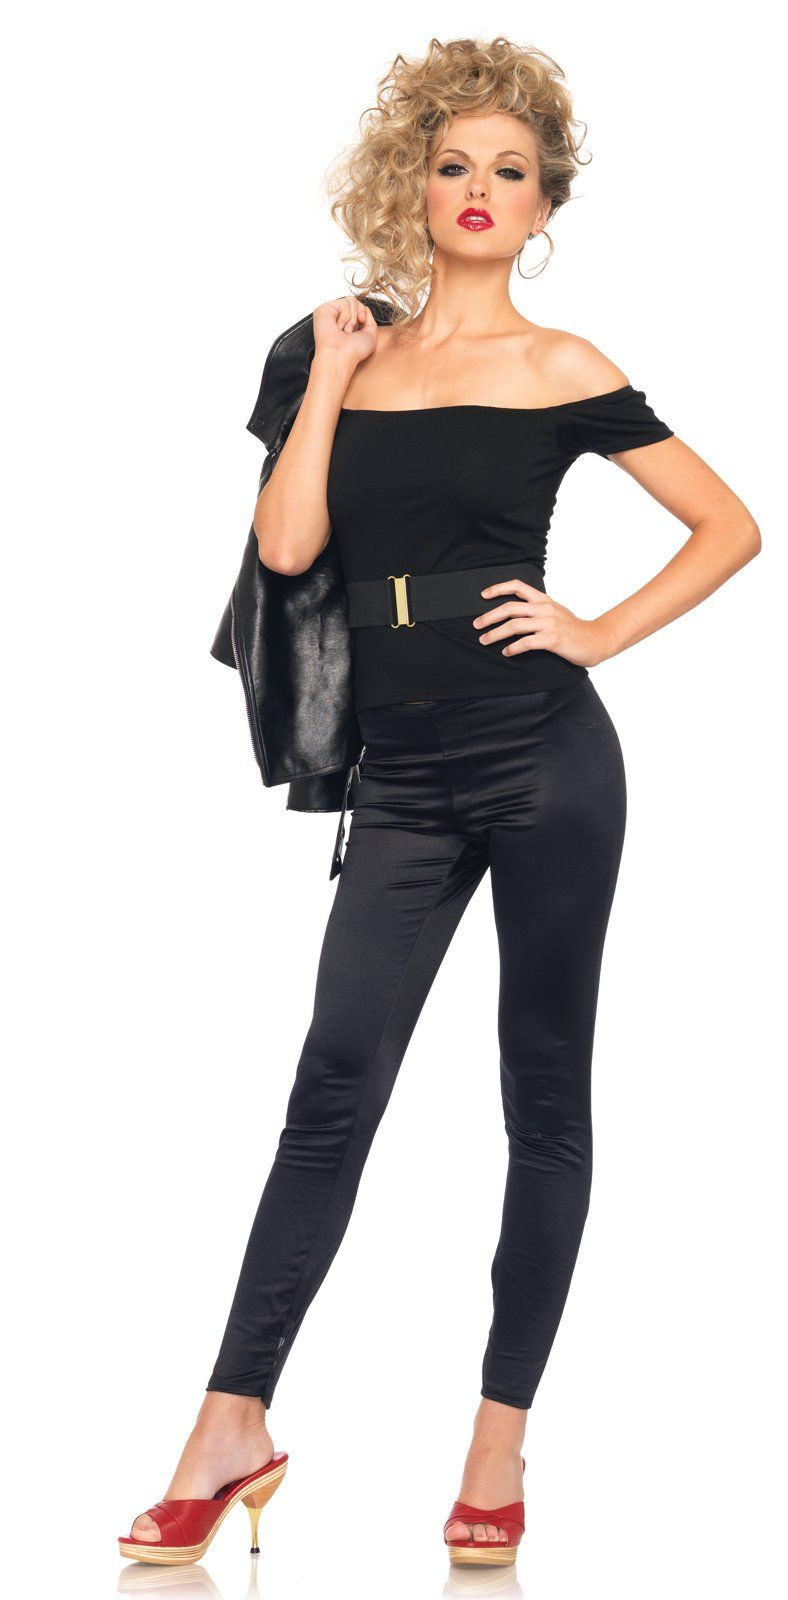 grease bad sandy outfit adult costume - Halloween Costumes Without Dressing Up